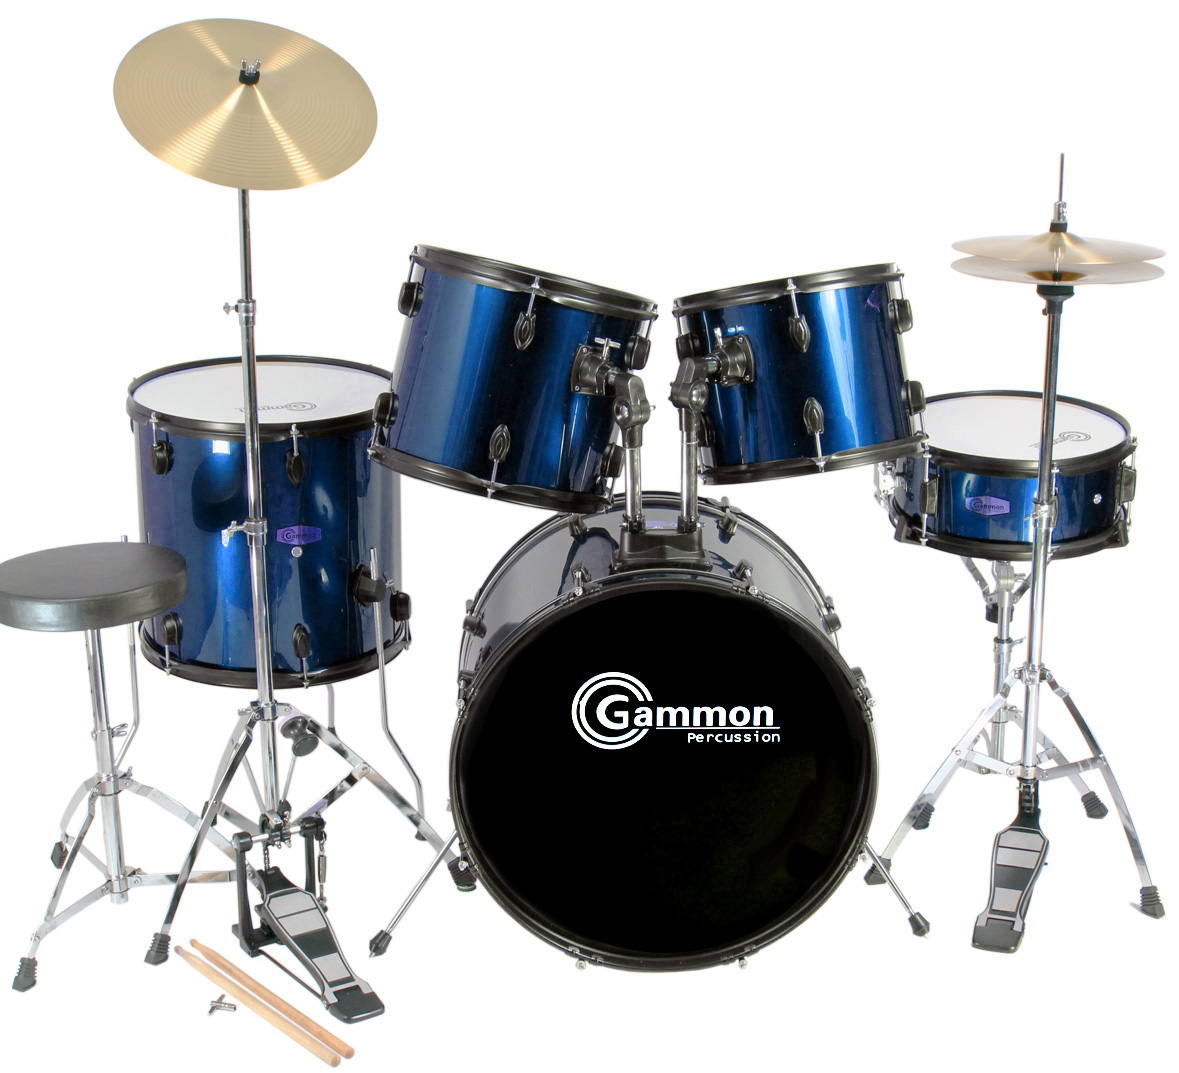 new complete 5 piece adult drum set cymbals full size with cymbals stands sticks ebay. Black Bedroom Furniture Sets. Home Design Ideas